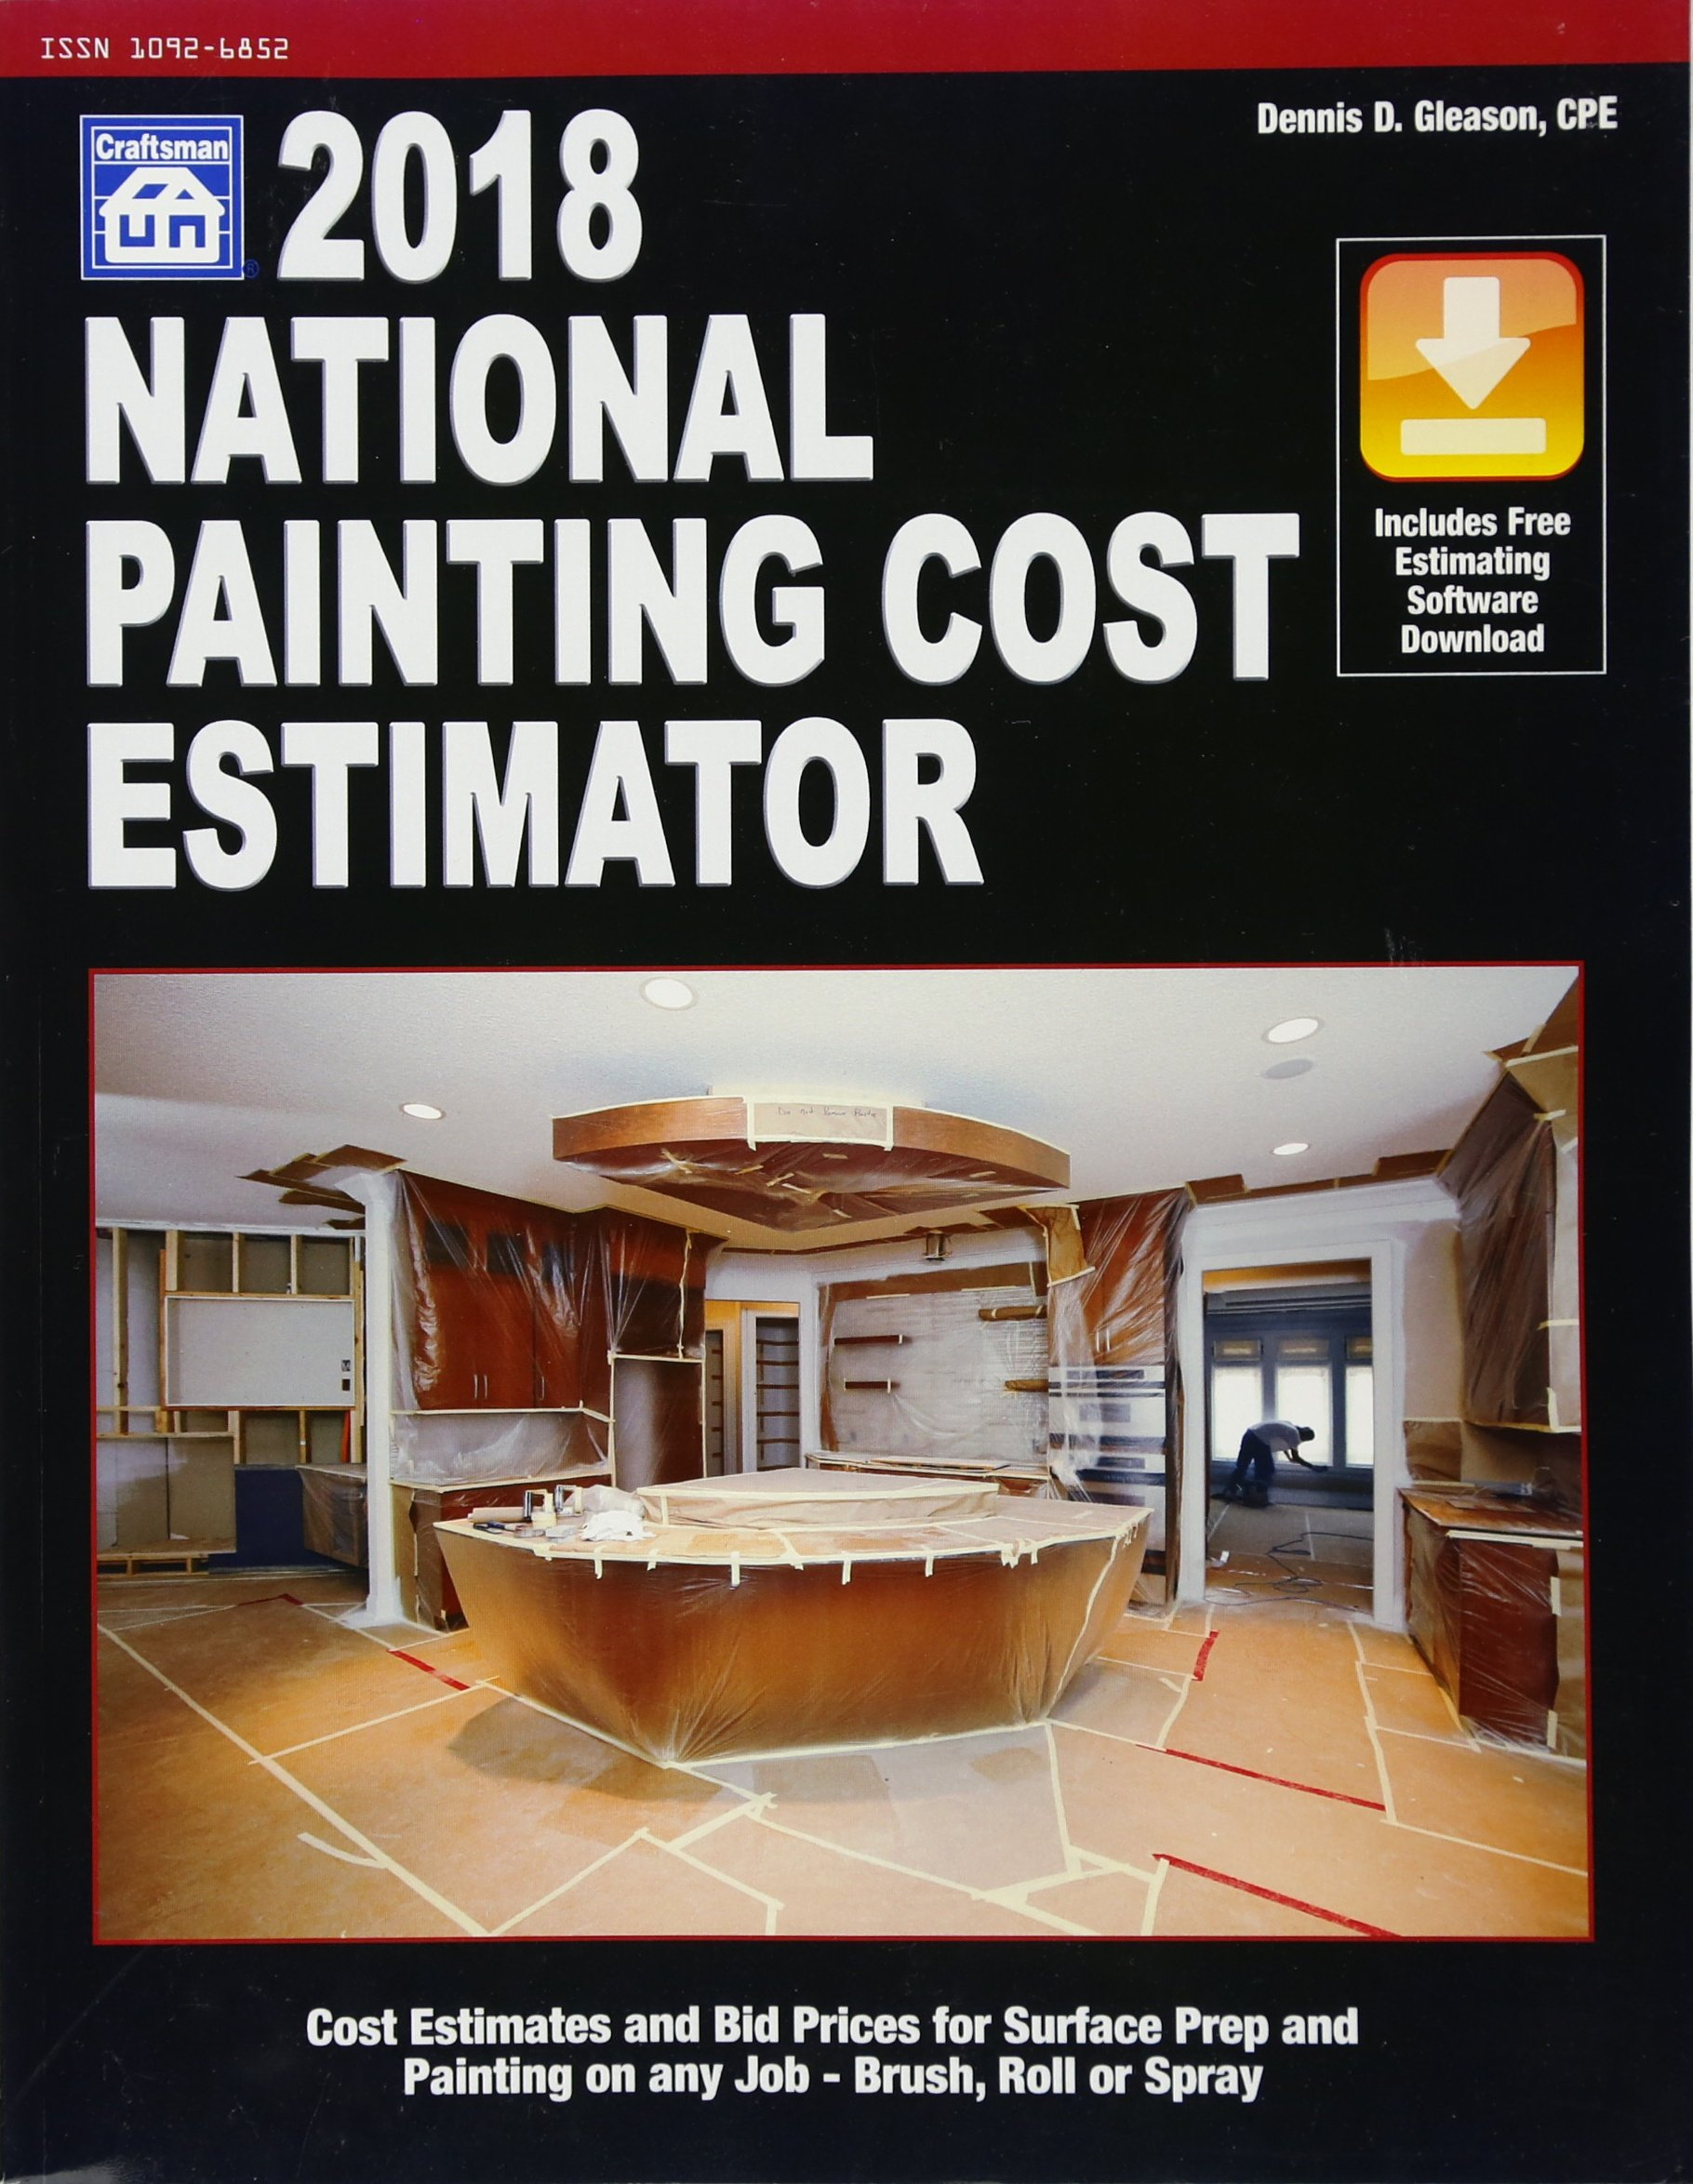 National Painting Cost Estimator 2018